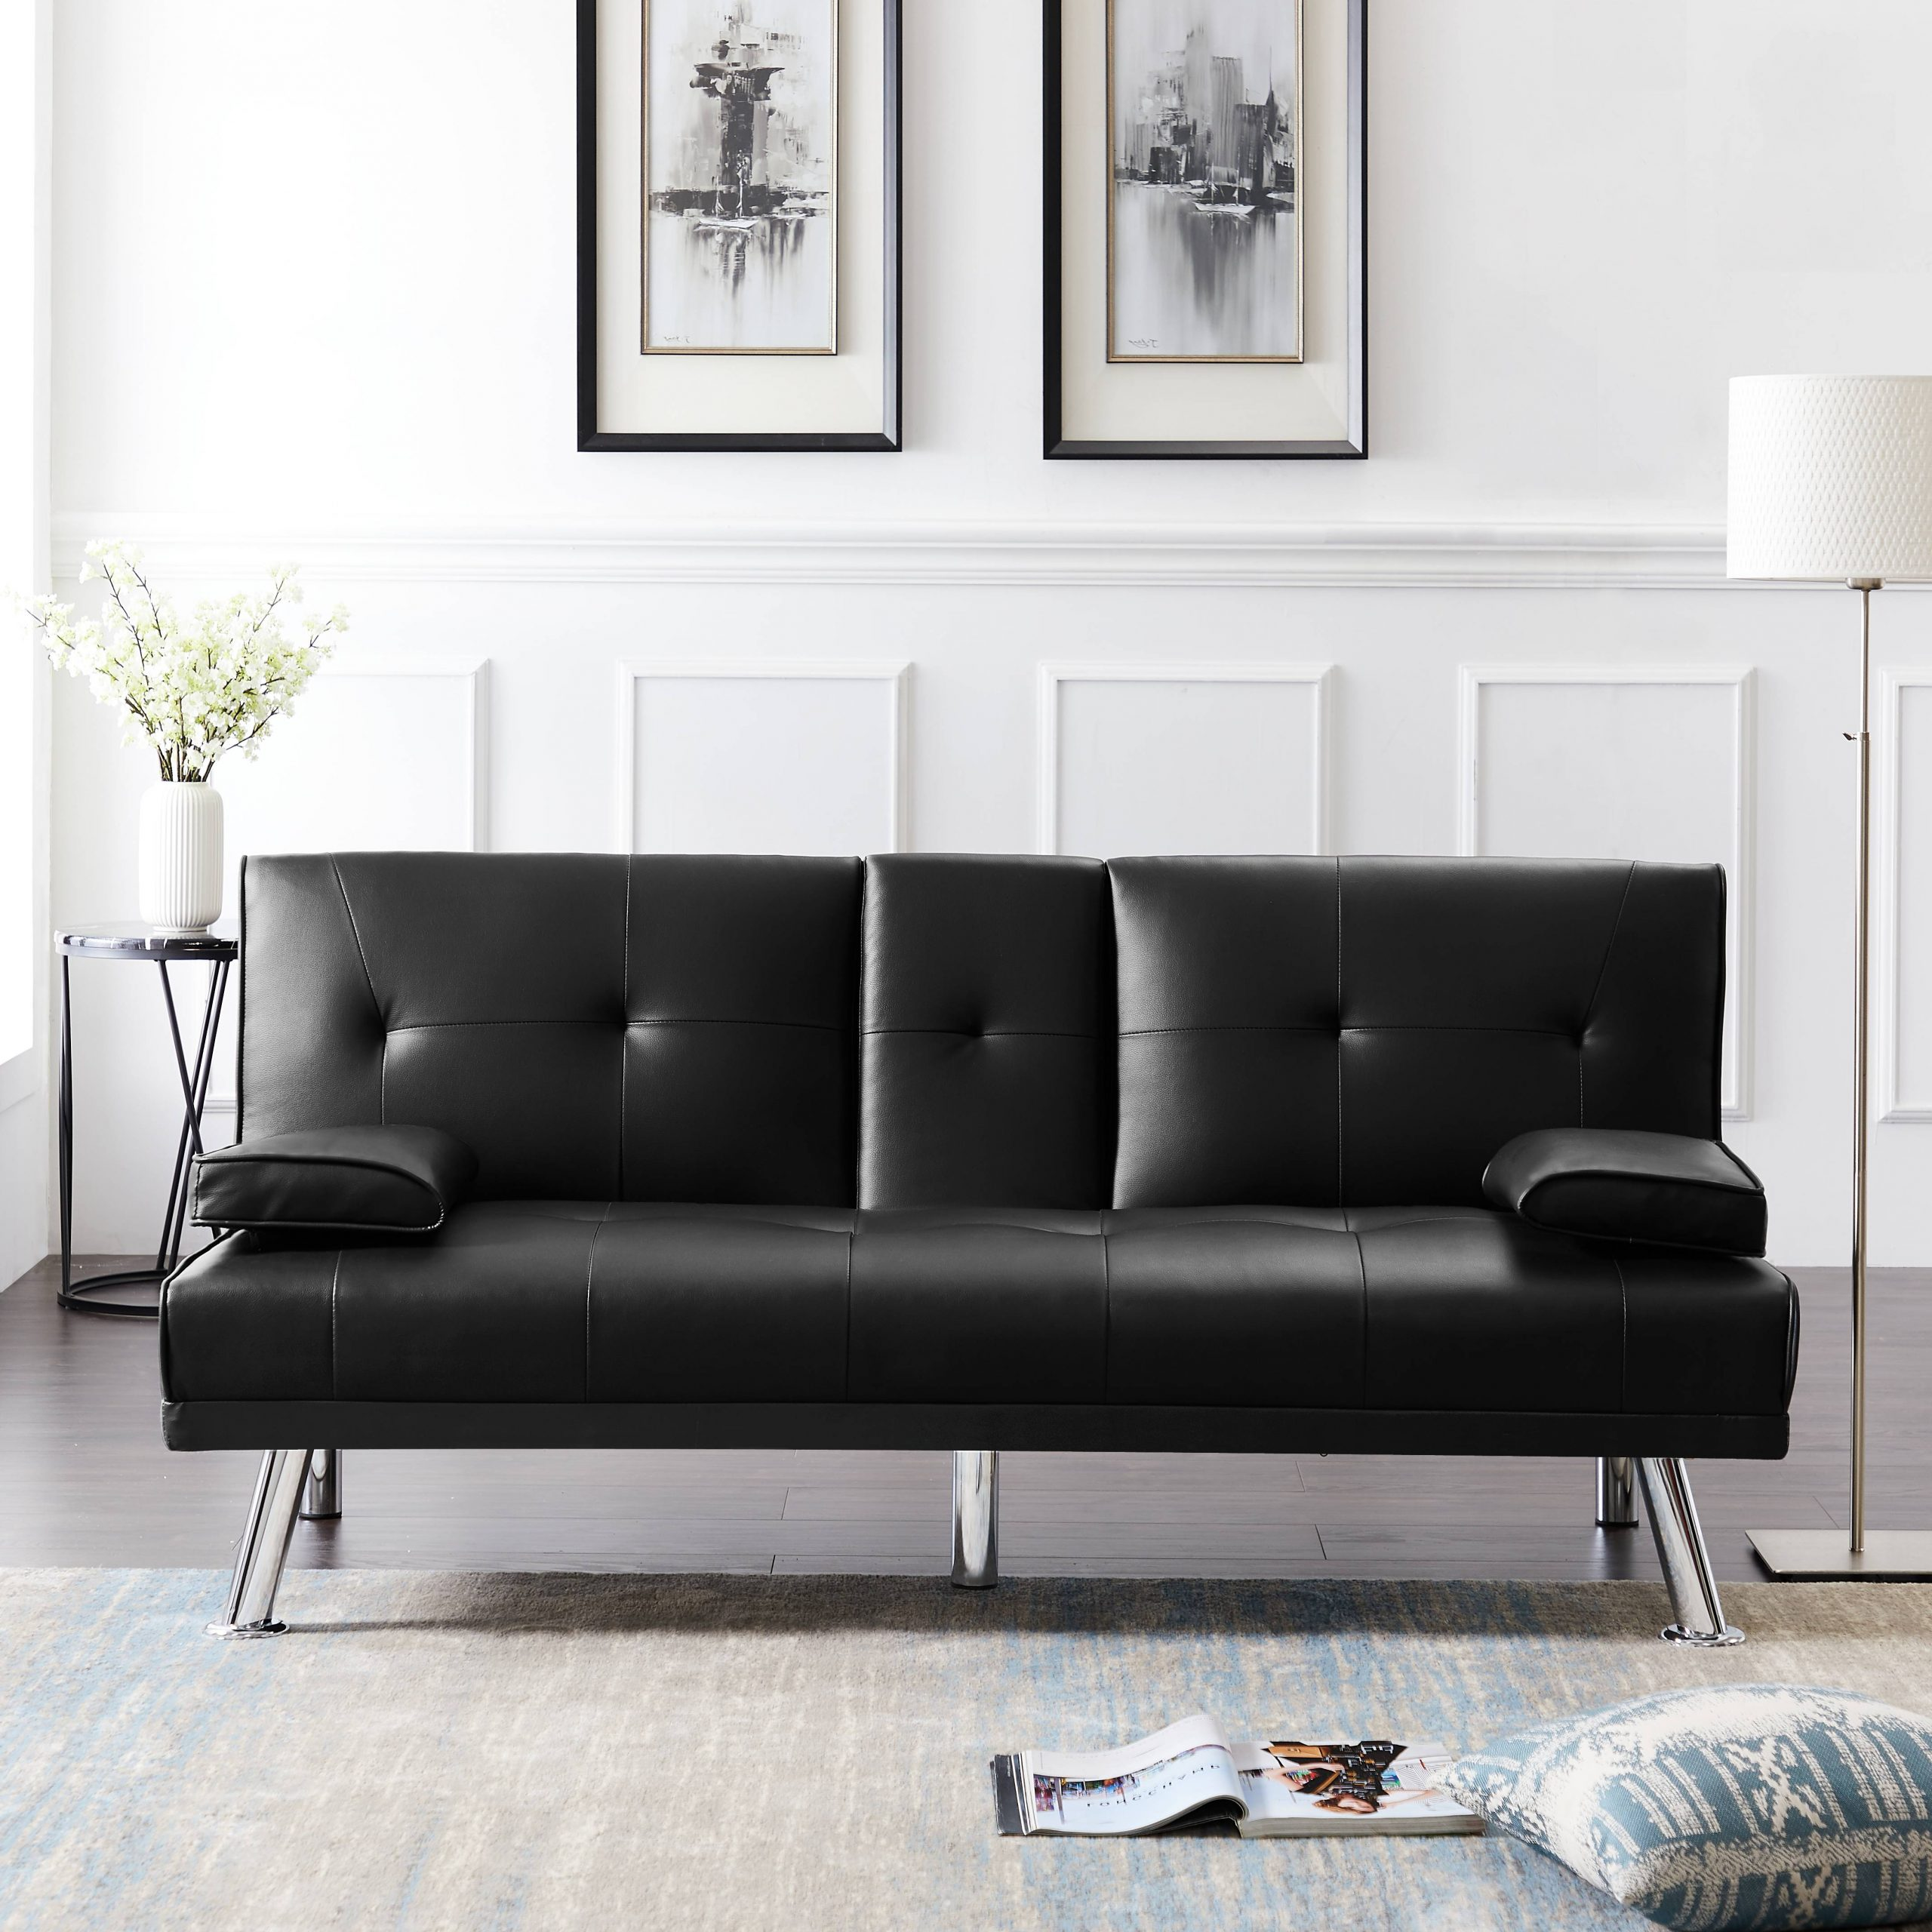 Sleeper Sofa, Urhomepro Modern Faux Leather Upholstery With Current Celine Sectional Futon Sofas With Storage Reclining Couch (View 10 of 20)